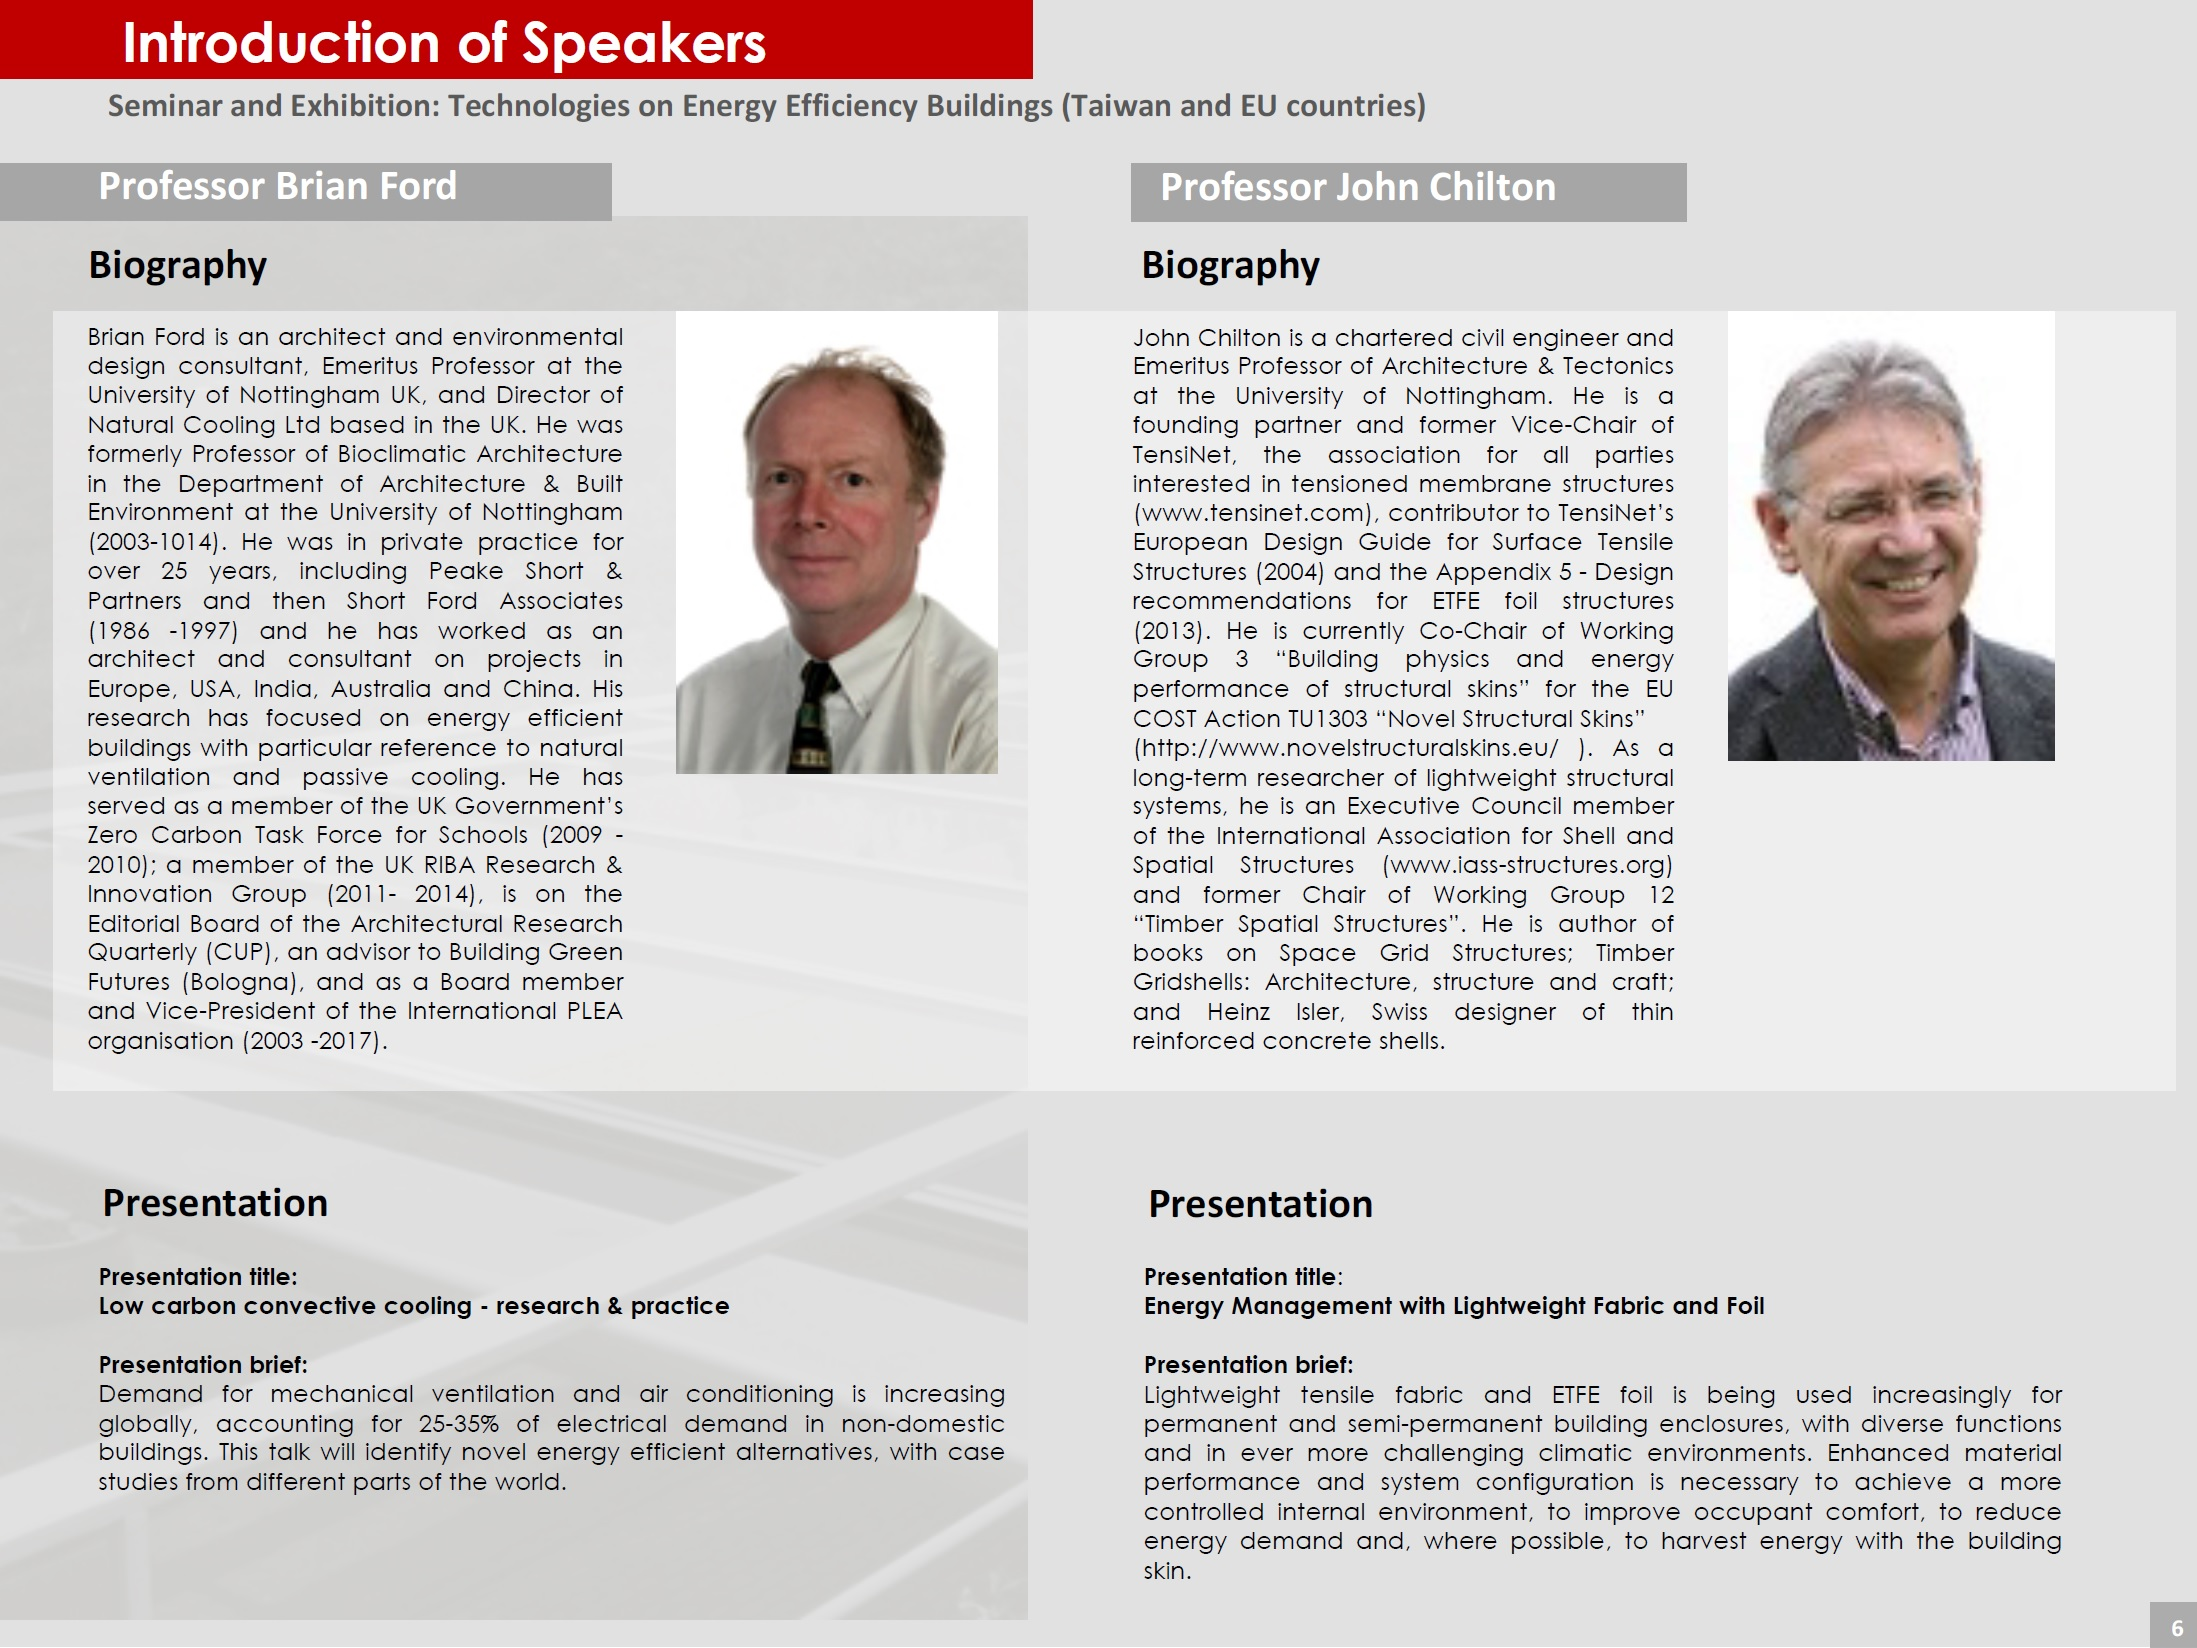 Page 6 (Introduction of Speakers)